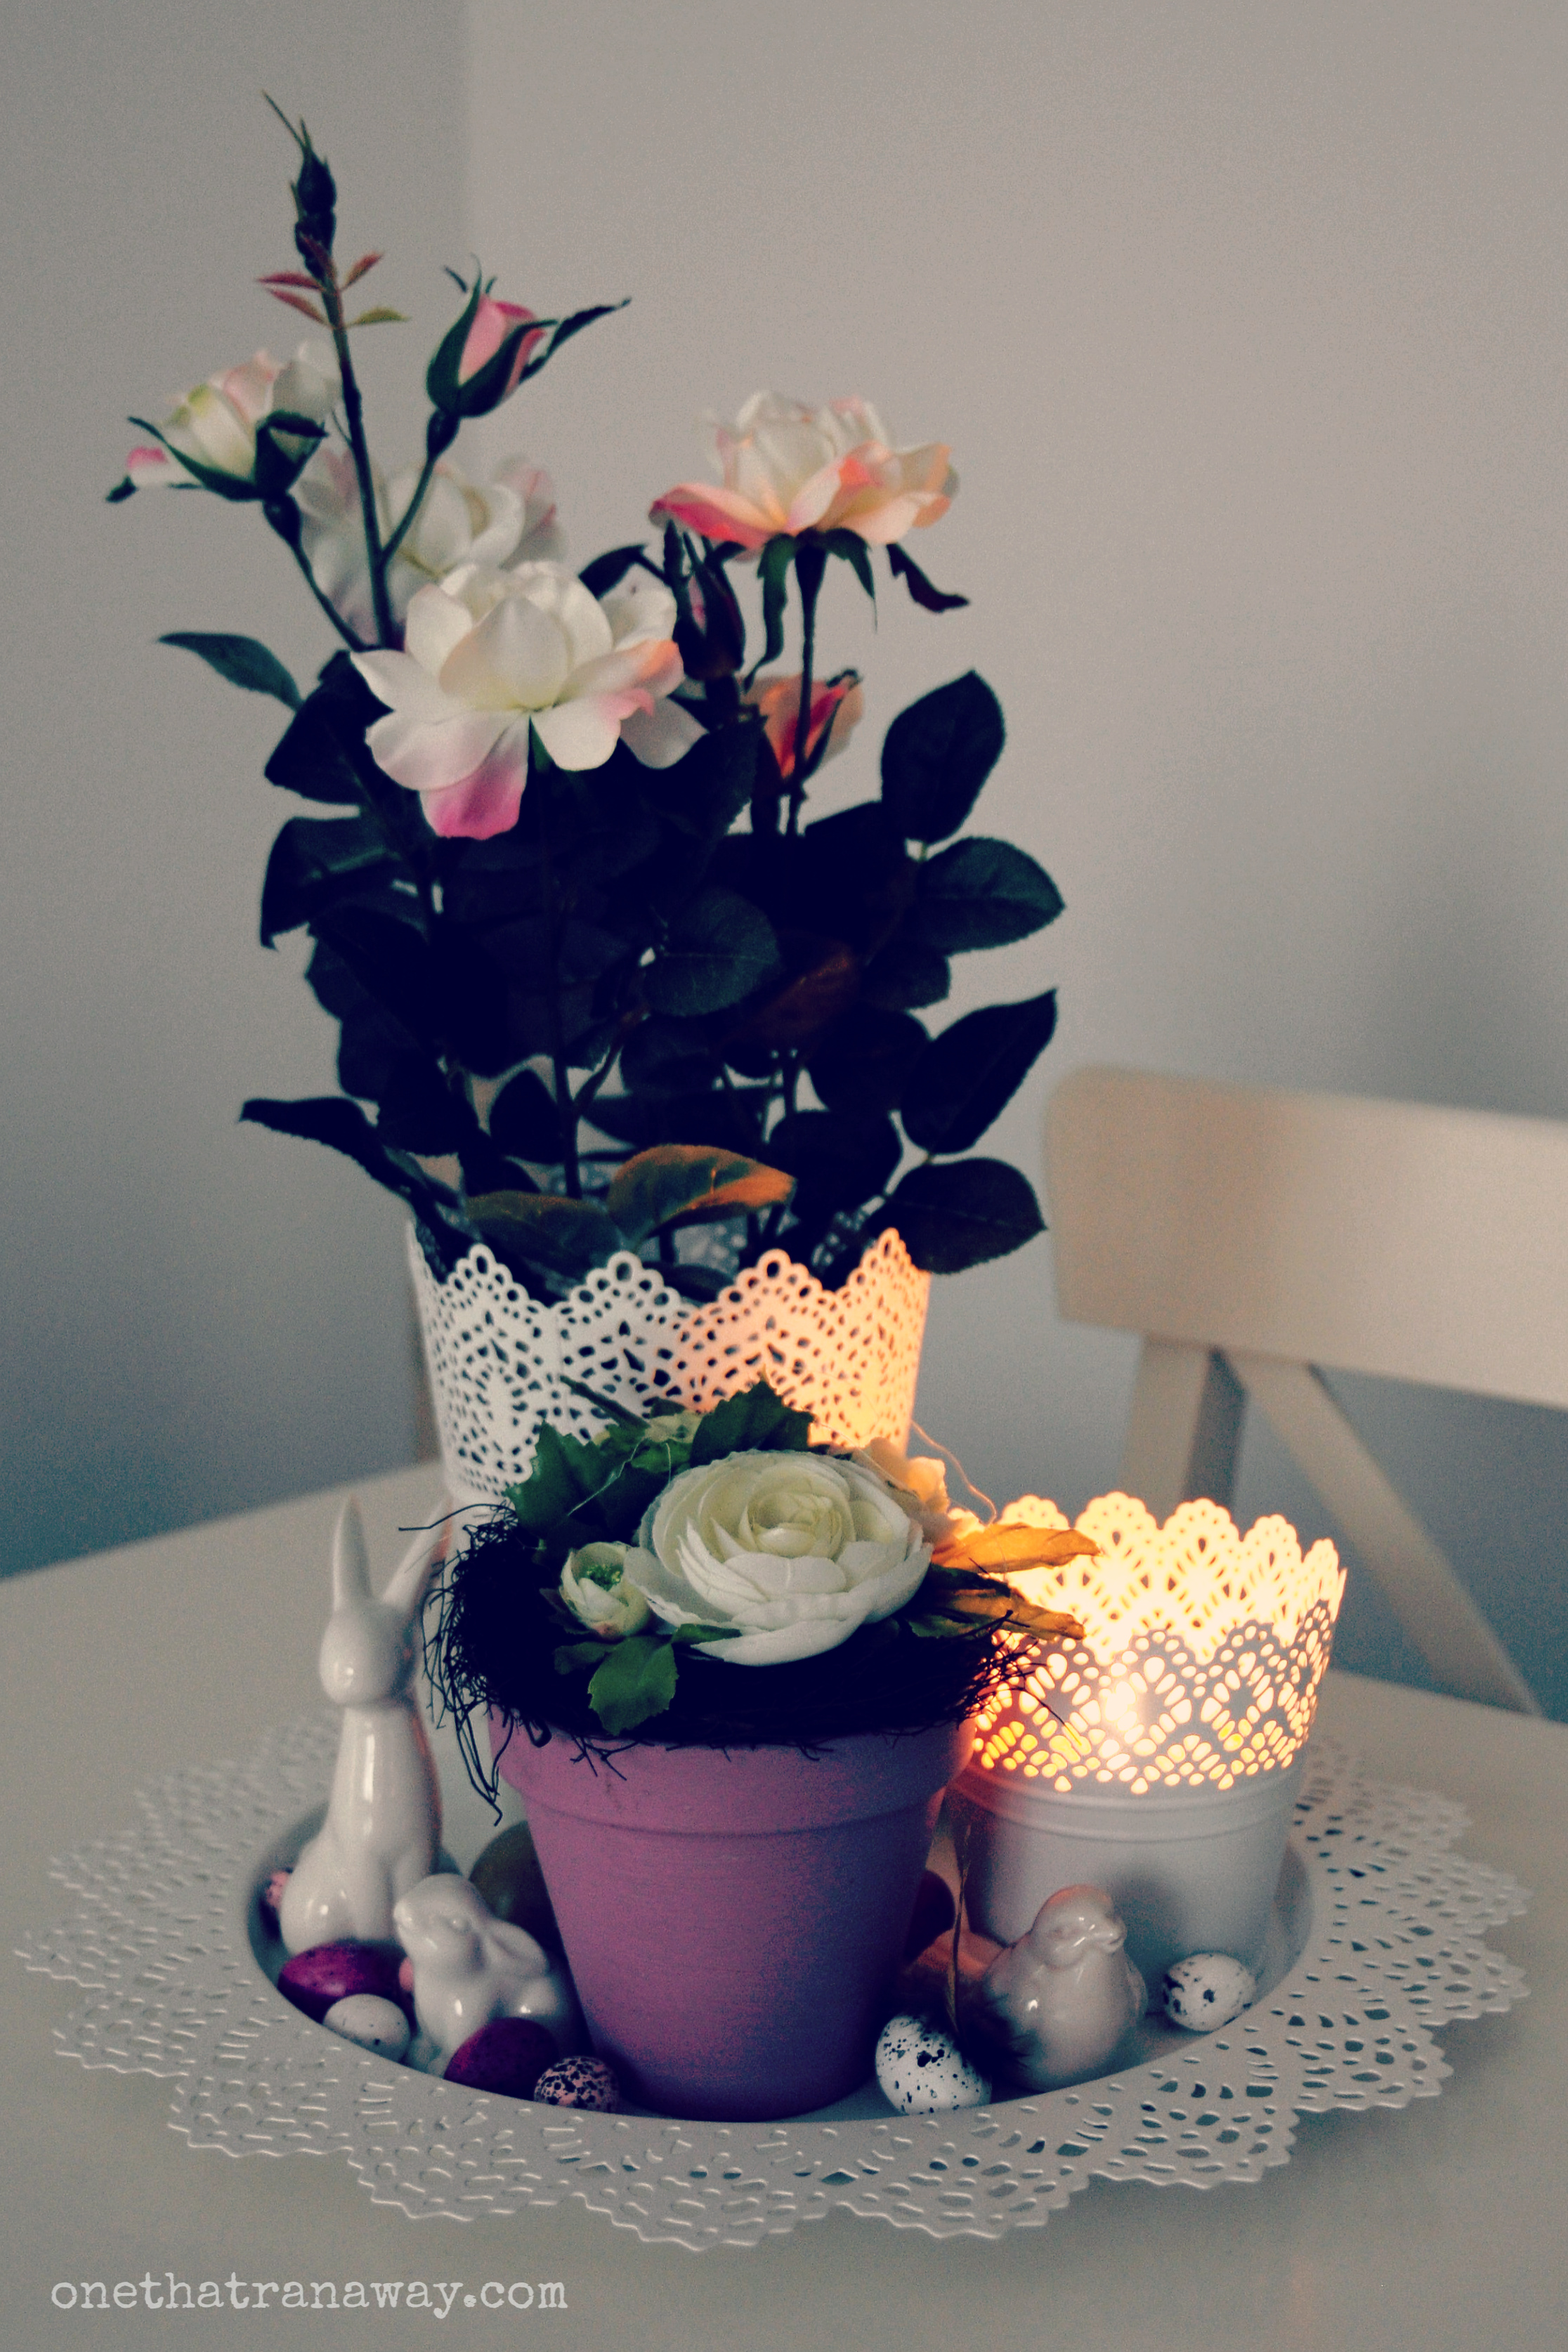 easter center piece with flowers and rabbit figurine